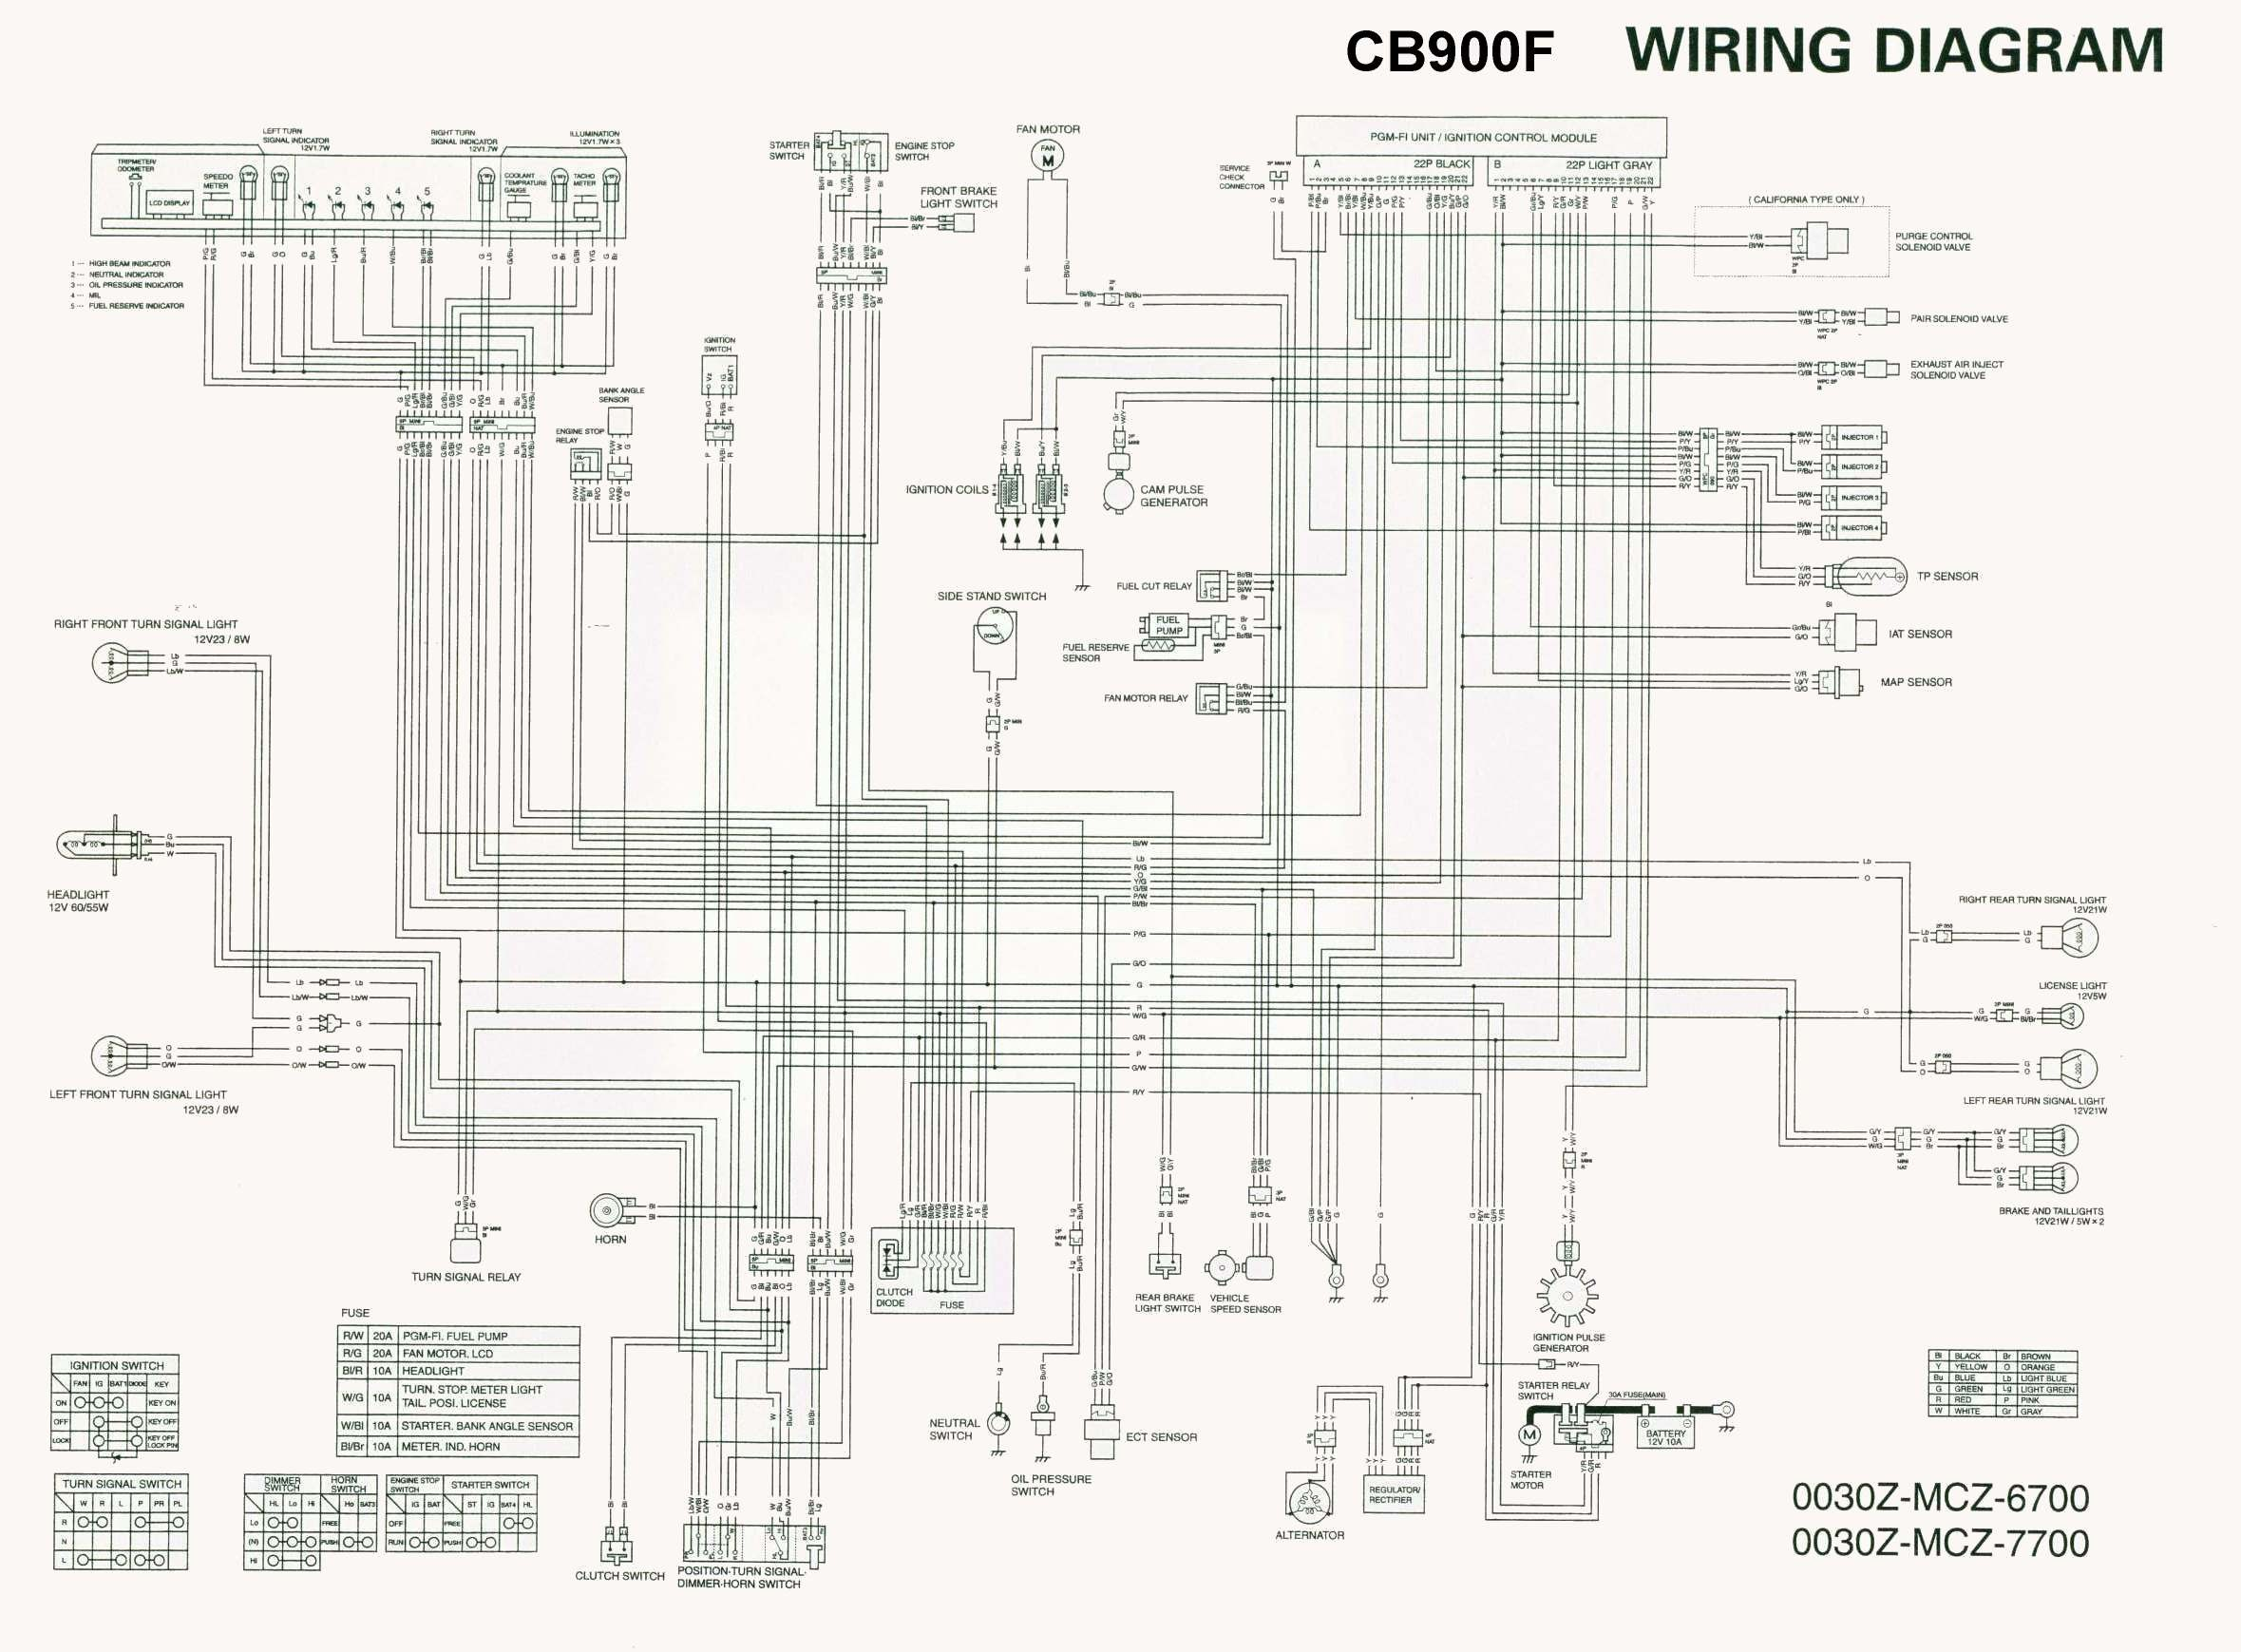 Honda Cb 900 Wiring Diagram On 2001 Honda Accord Wiring Diagram 12